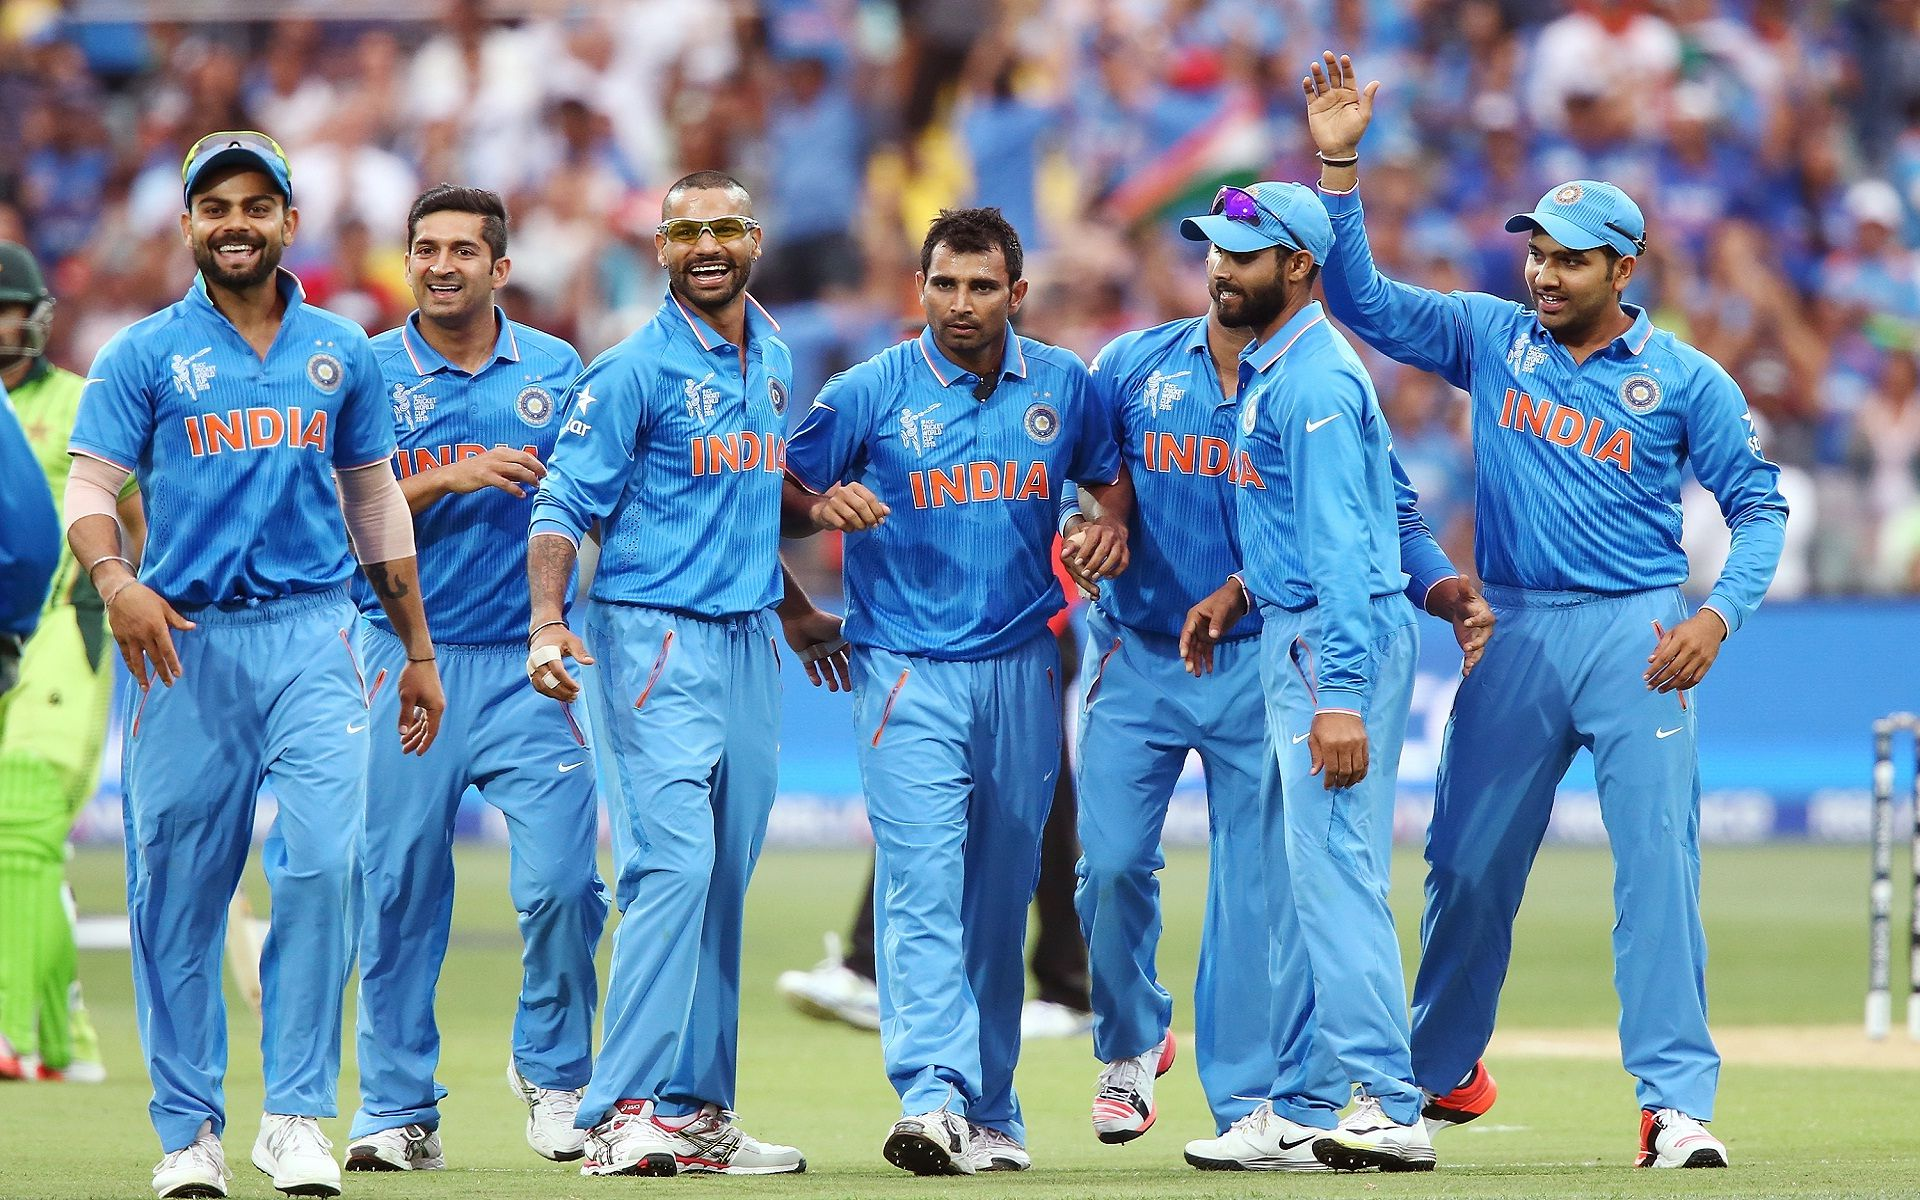 Happy indian cricket team on the ground nice wallpapers HD 1920x1200